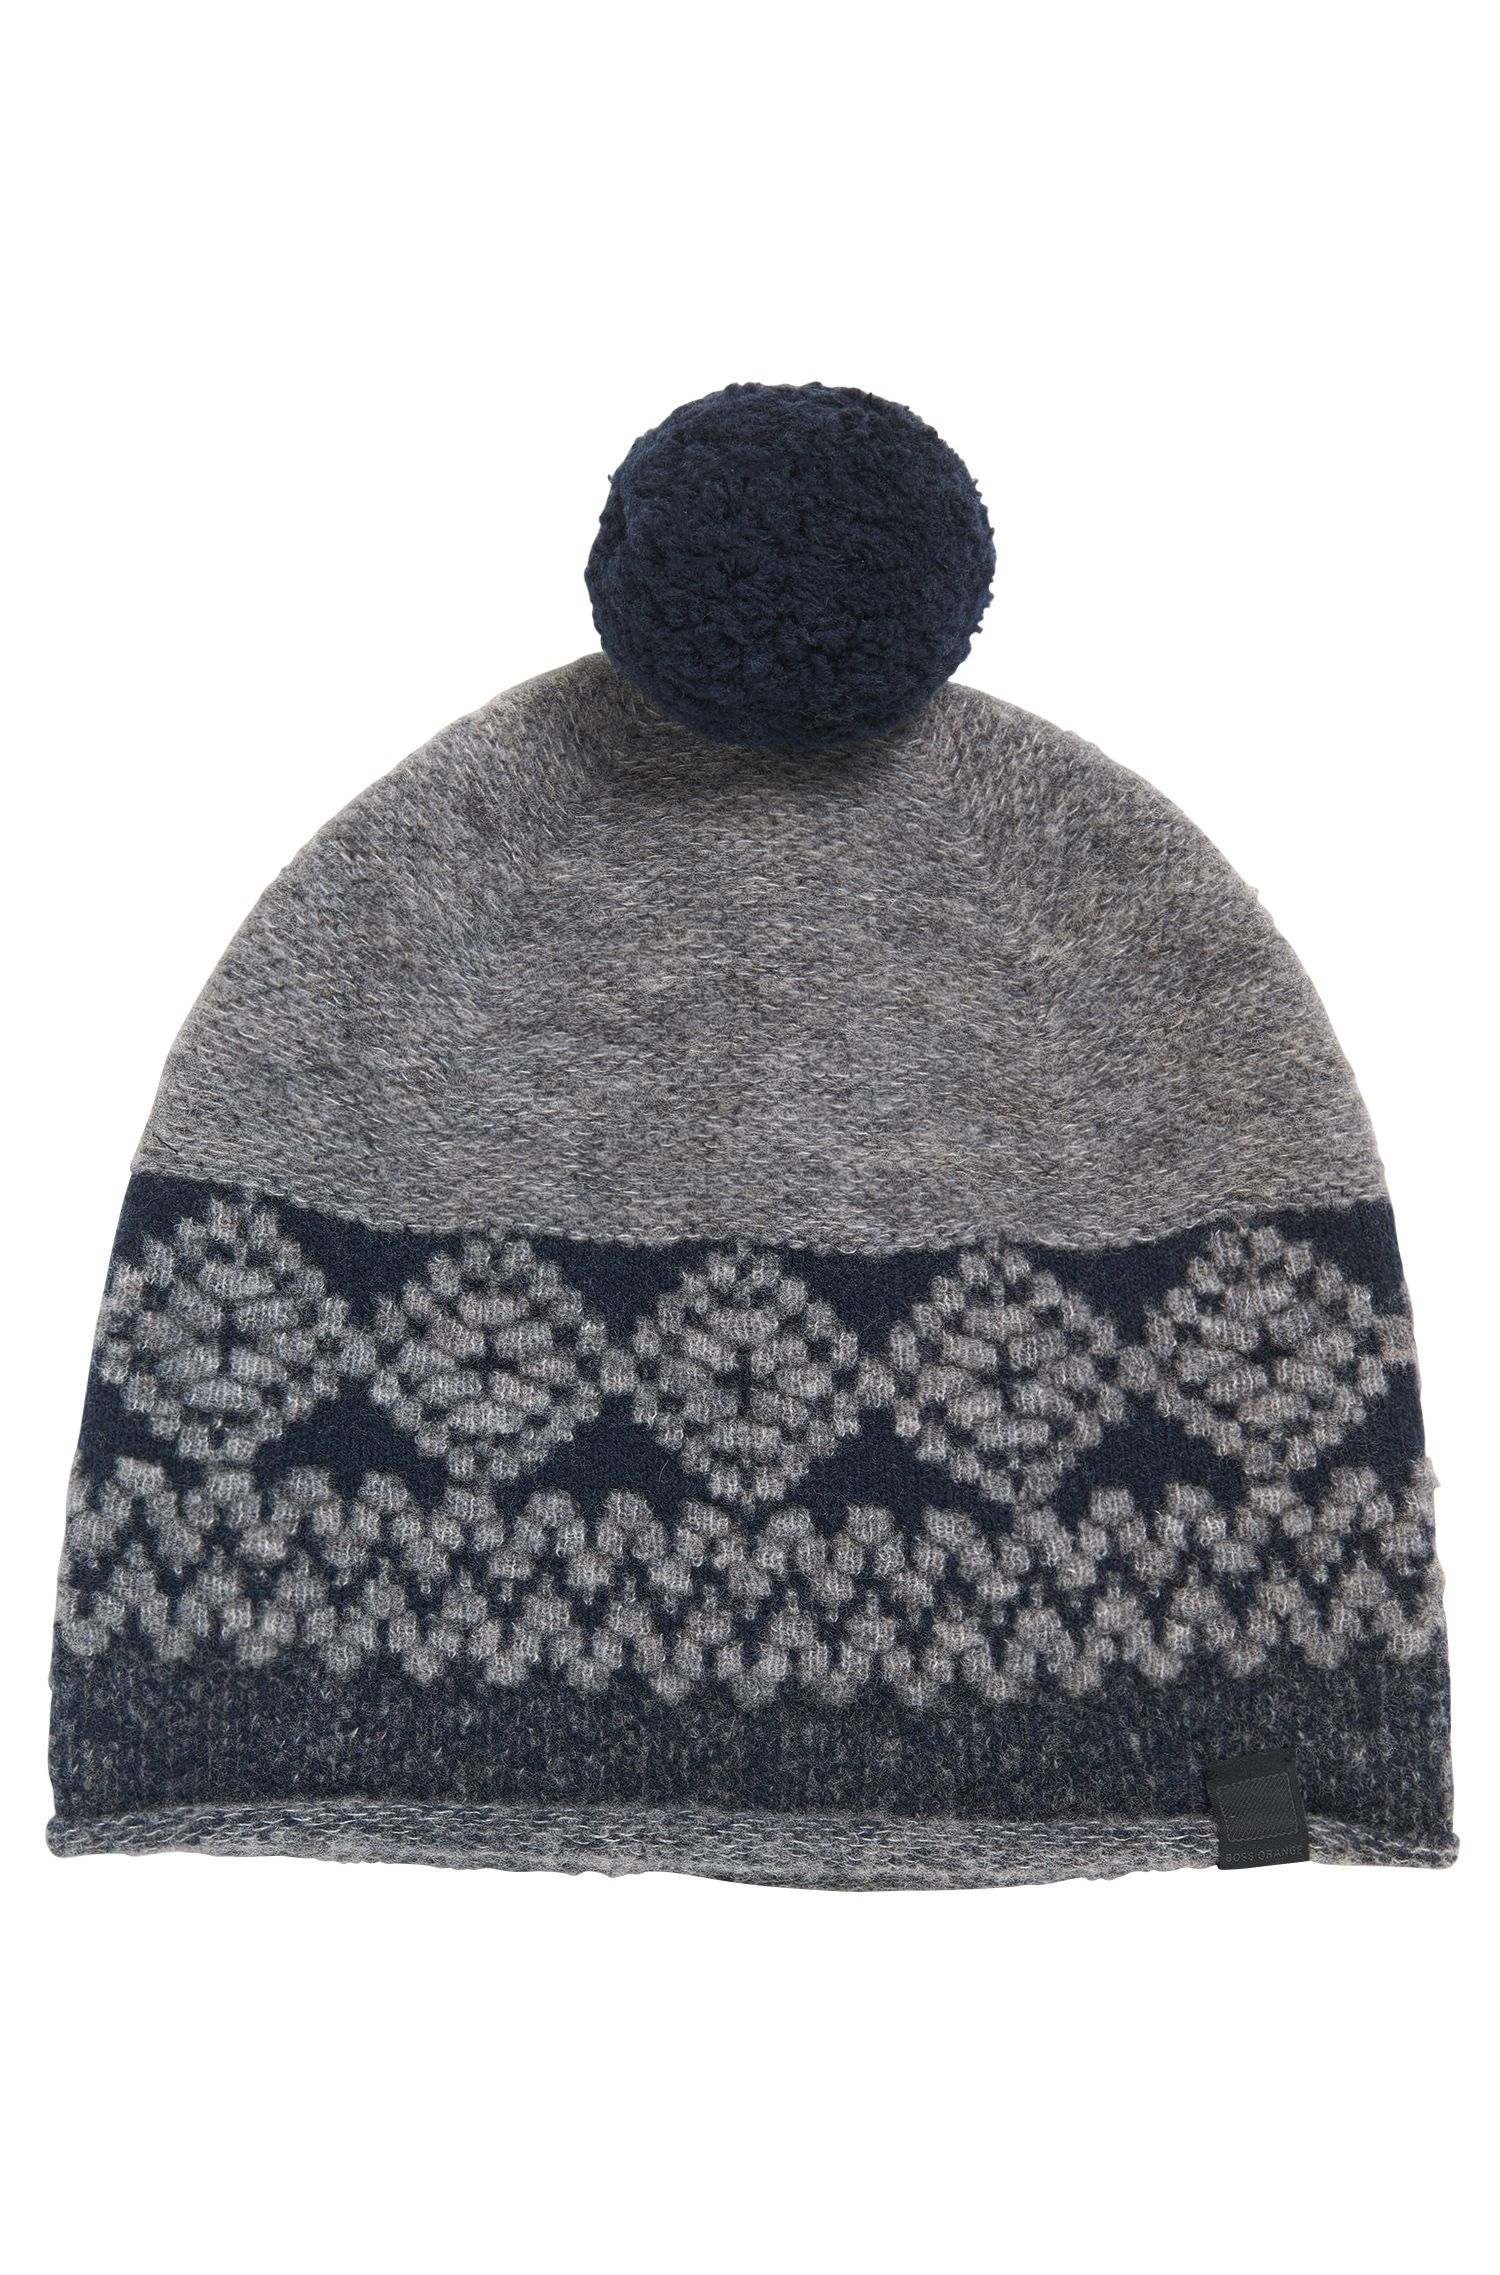 Wool-blend beanie hat with pom pom